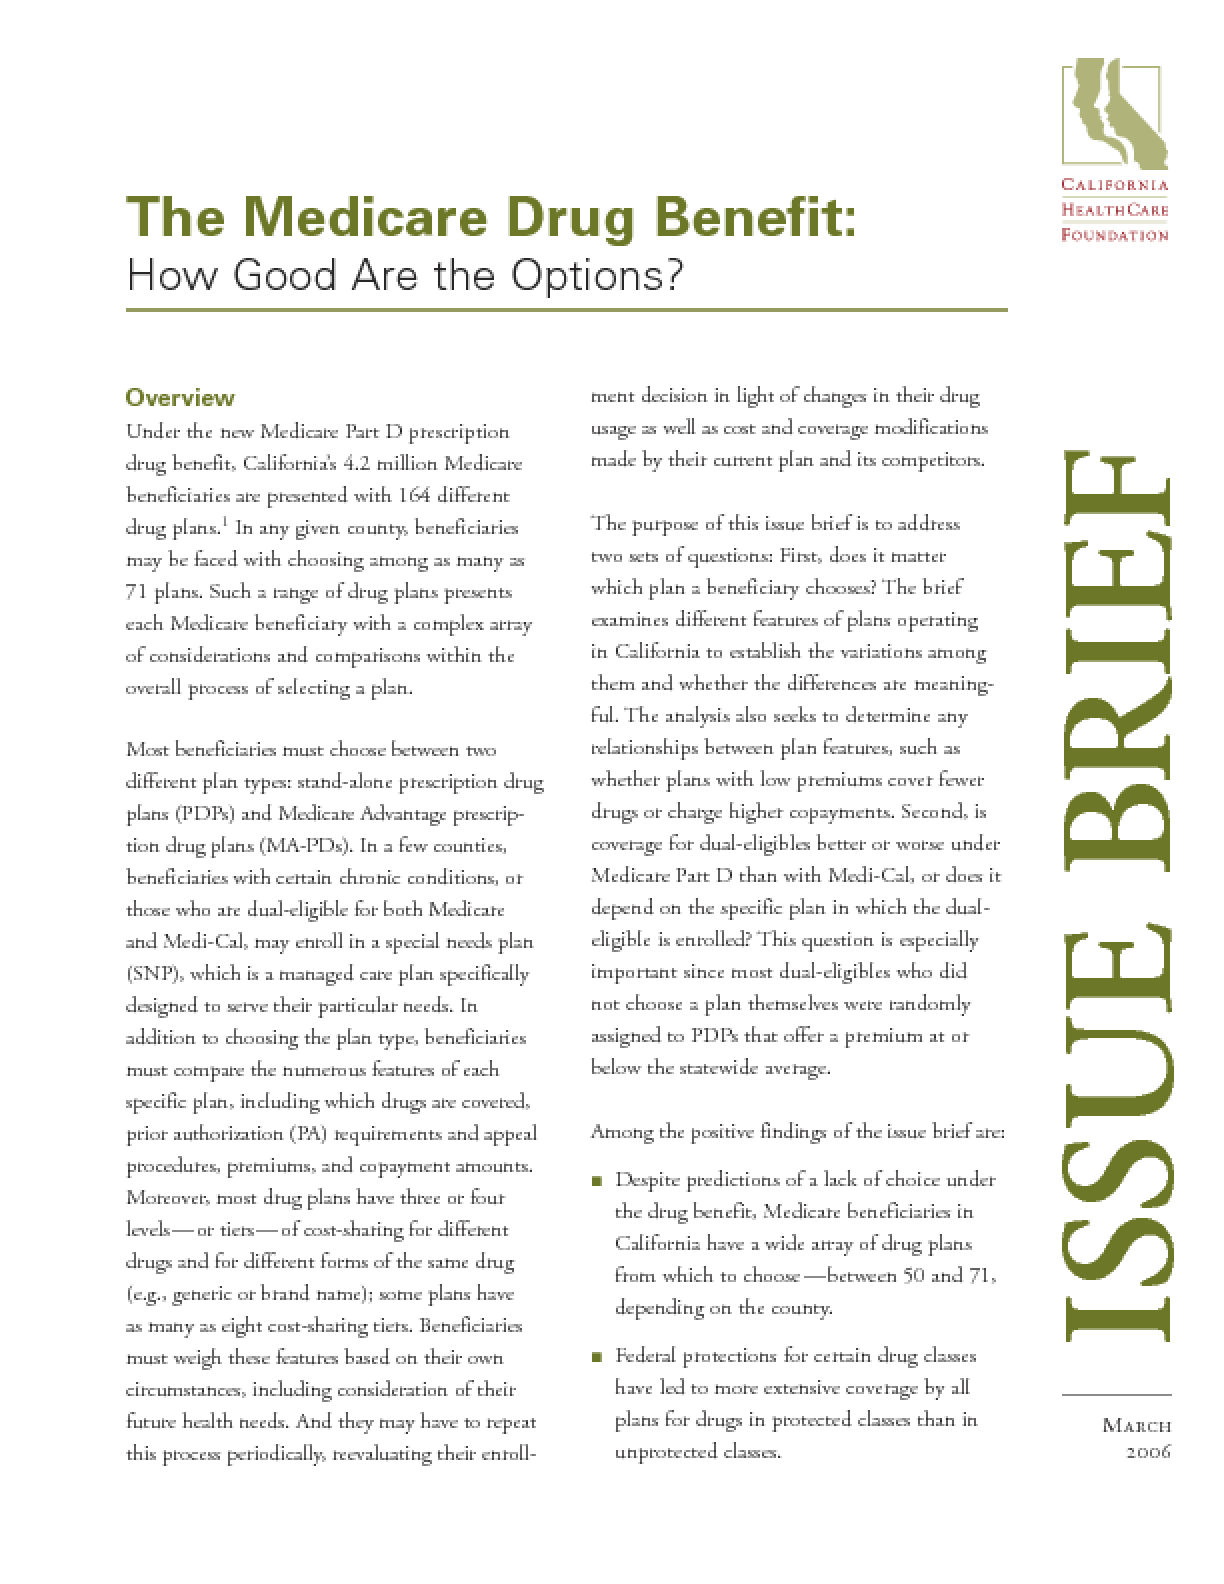 The Medicare Drug Benefit: How Good Are the Options?